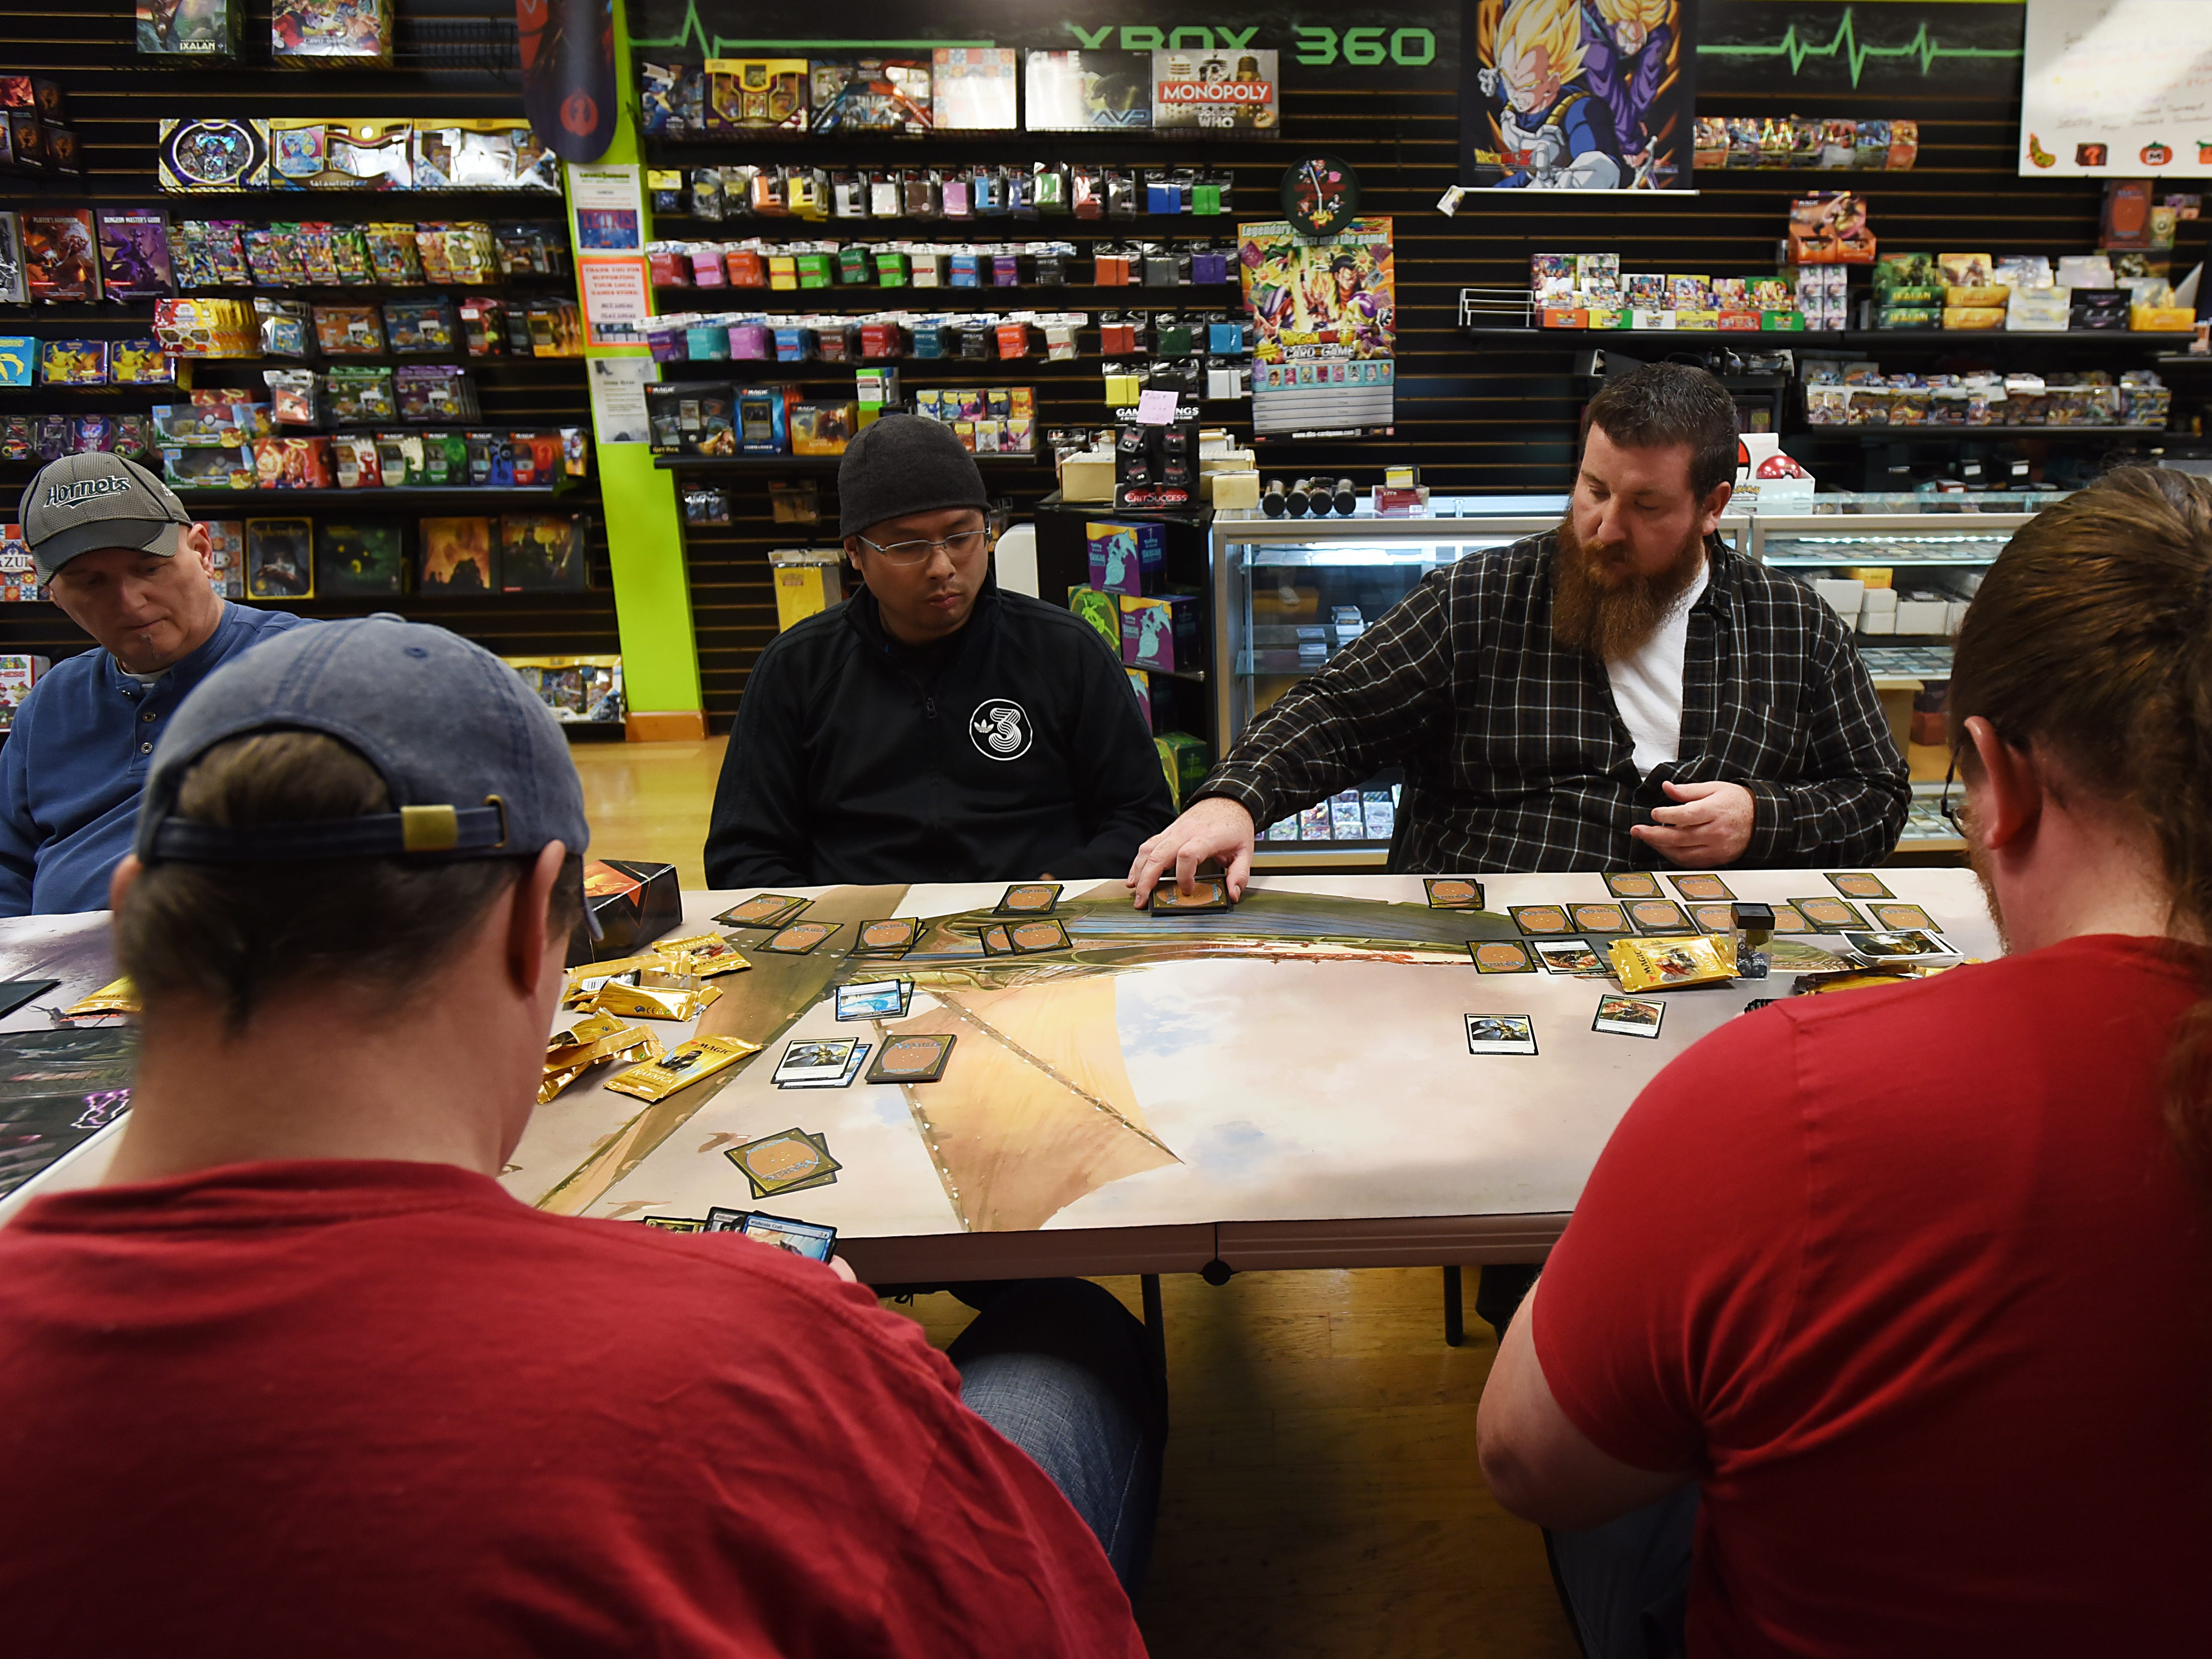 Customers play Magic: The Gathering at Level 1 Games in Pompton Plains on Friday November 30, 2018.